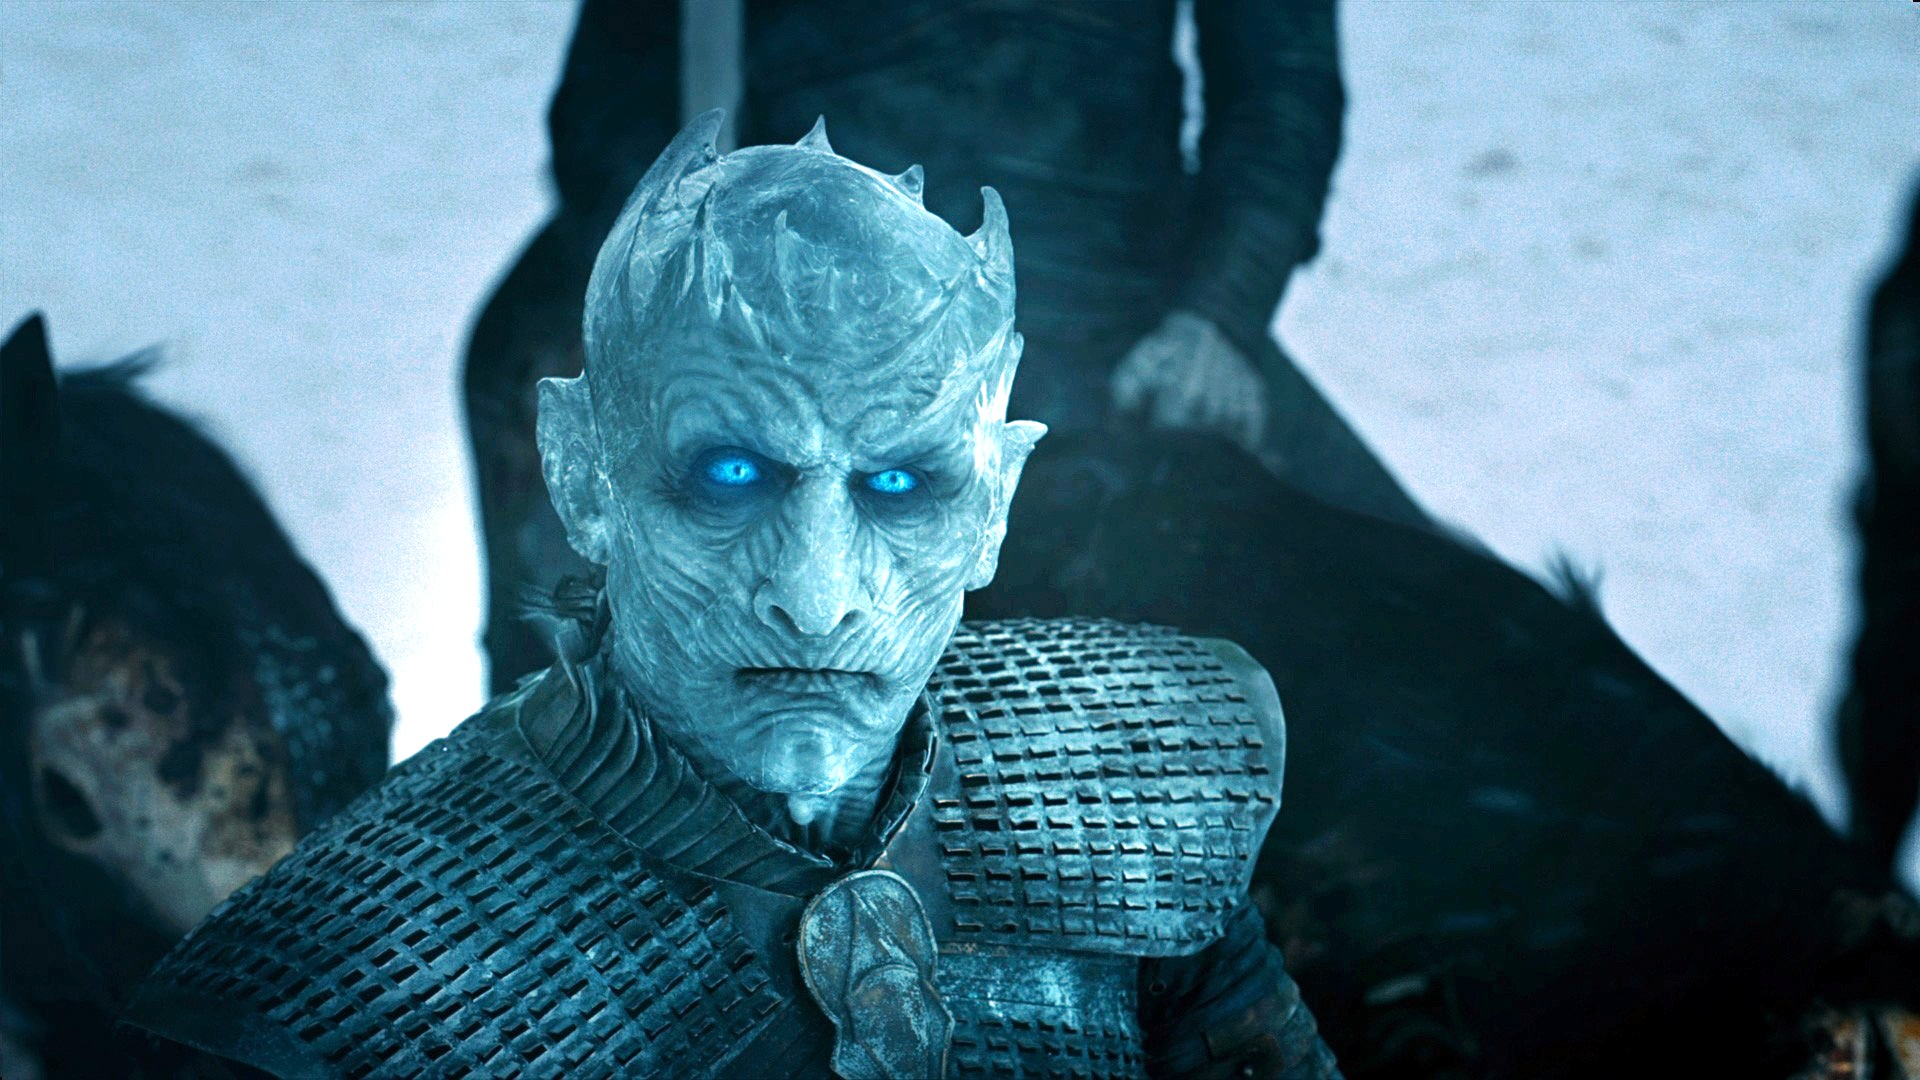 Game Of Thrones Night King Wallpaper Hd With High-resolution - Game Of Thrones Season 8 Episode 3 Night King - HD Wallpaper